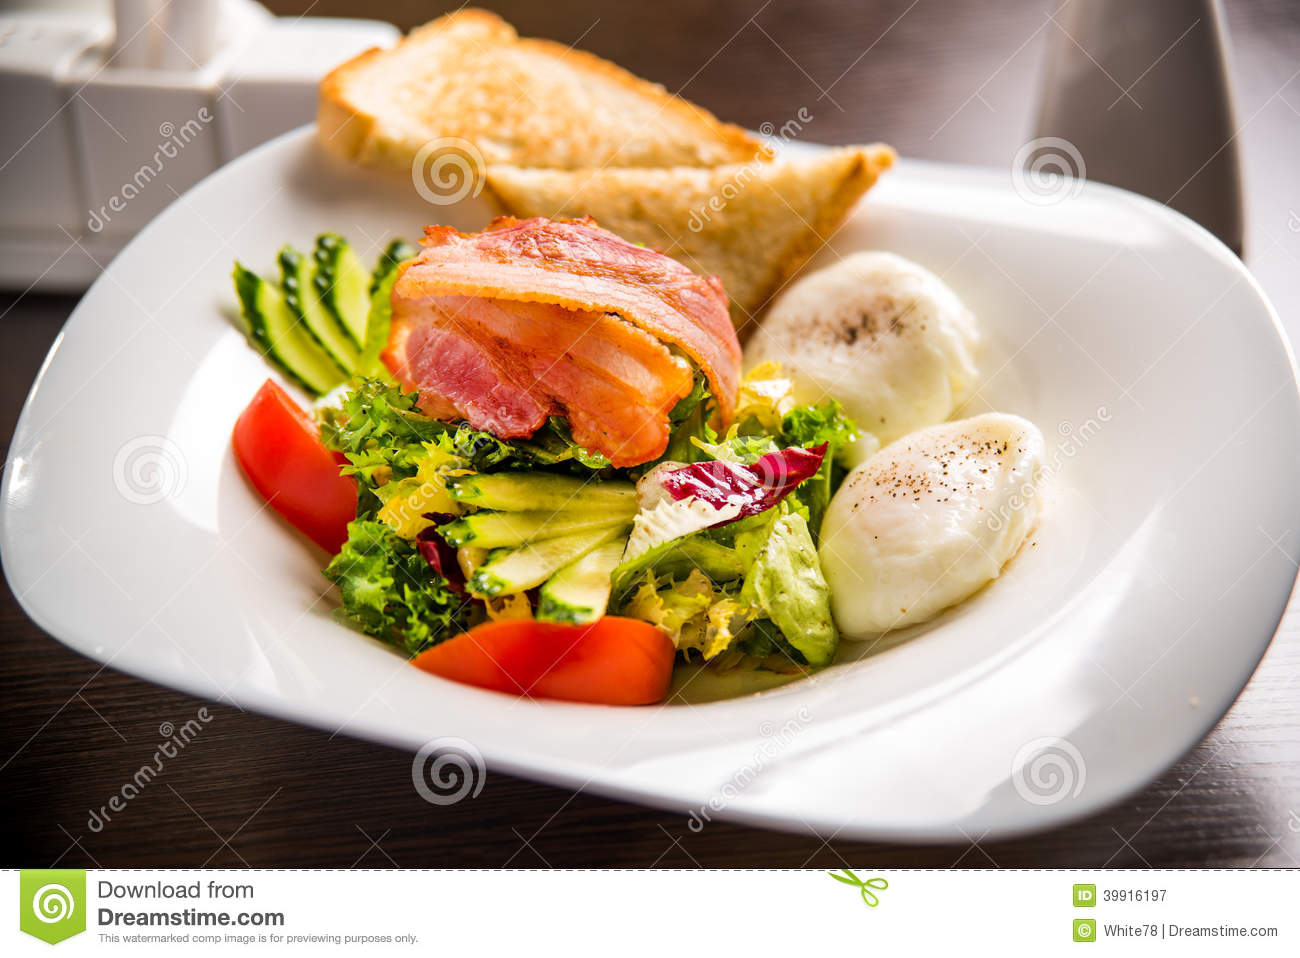 Tasty Food Stock Photo Image 39916197